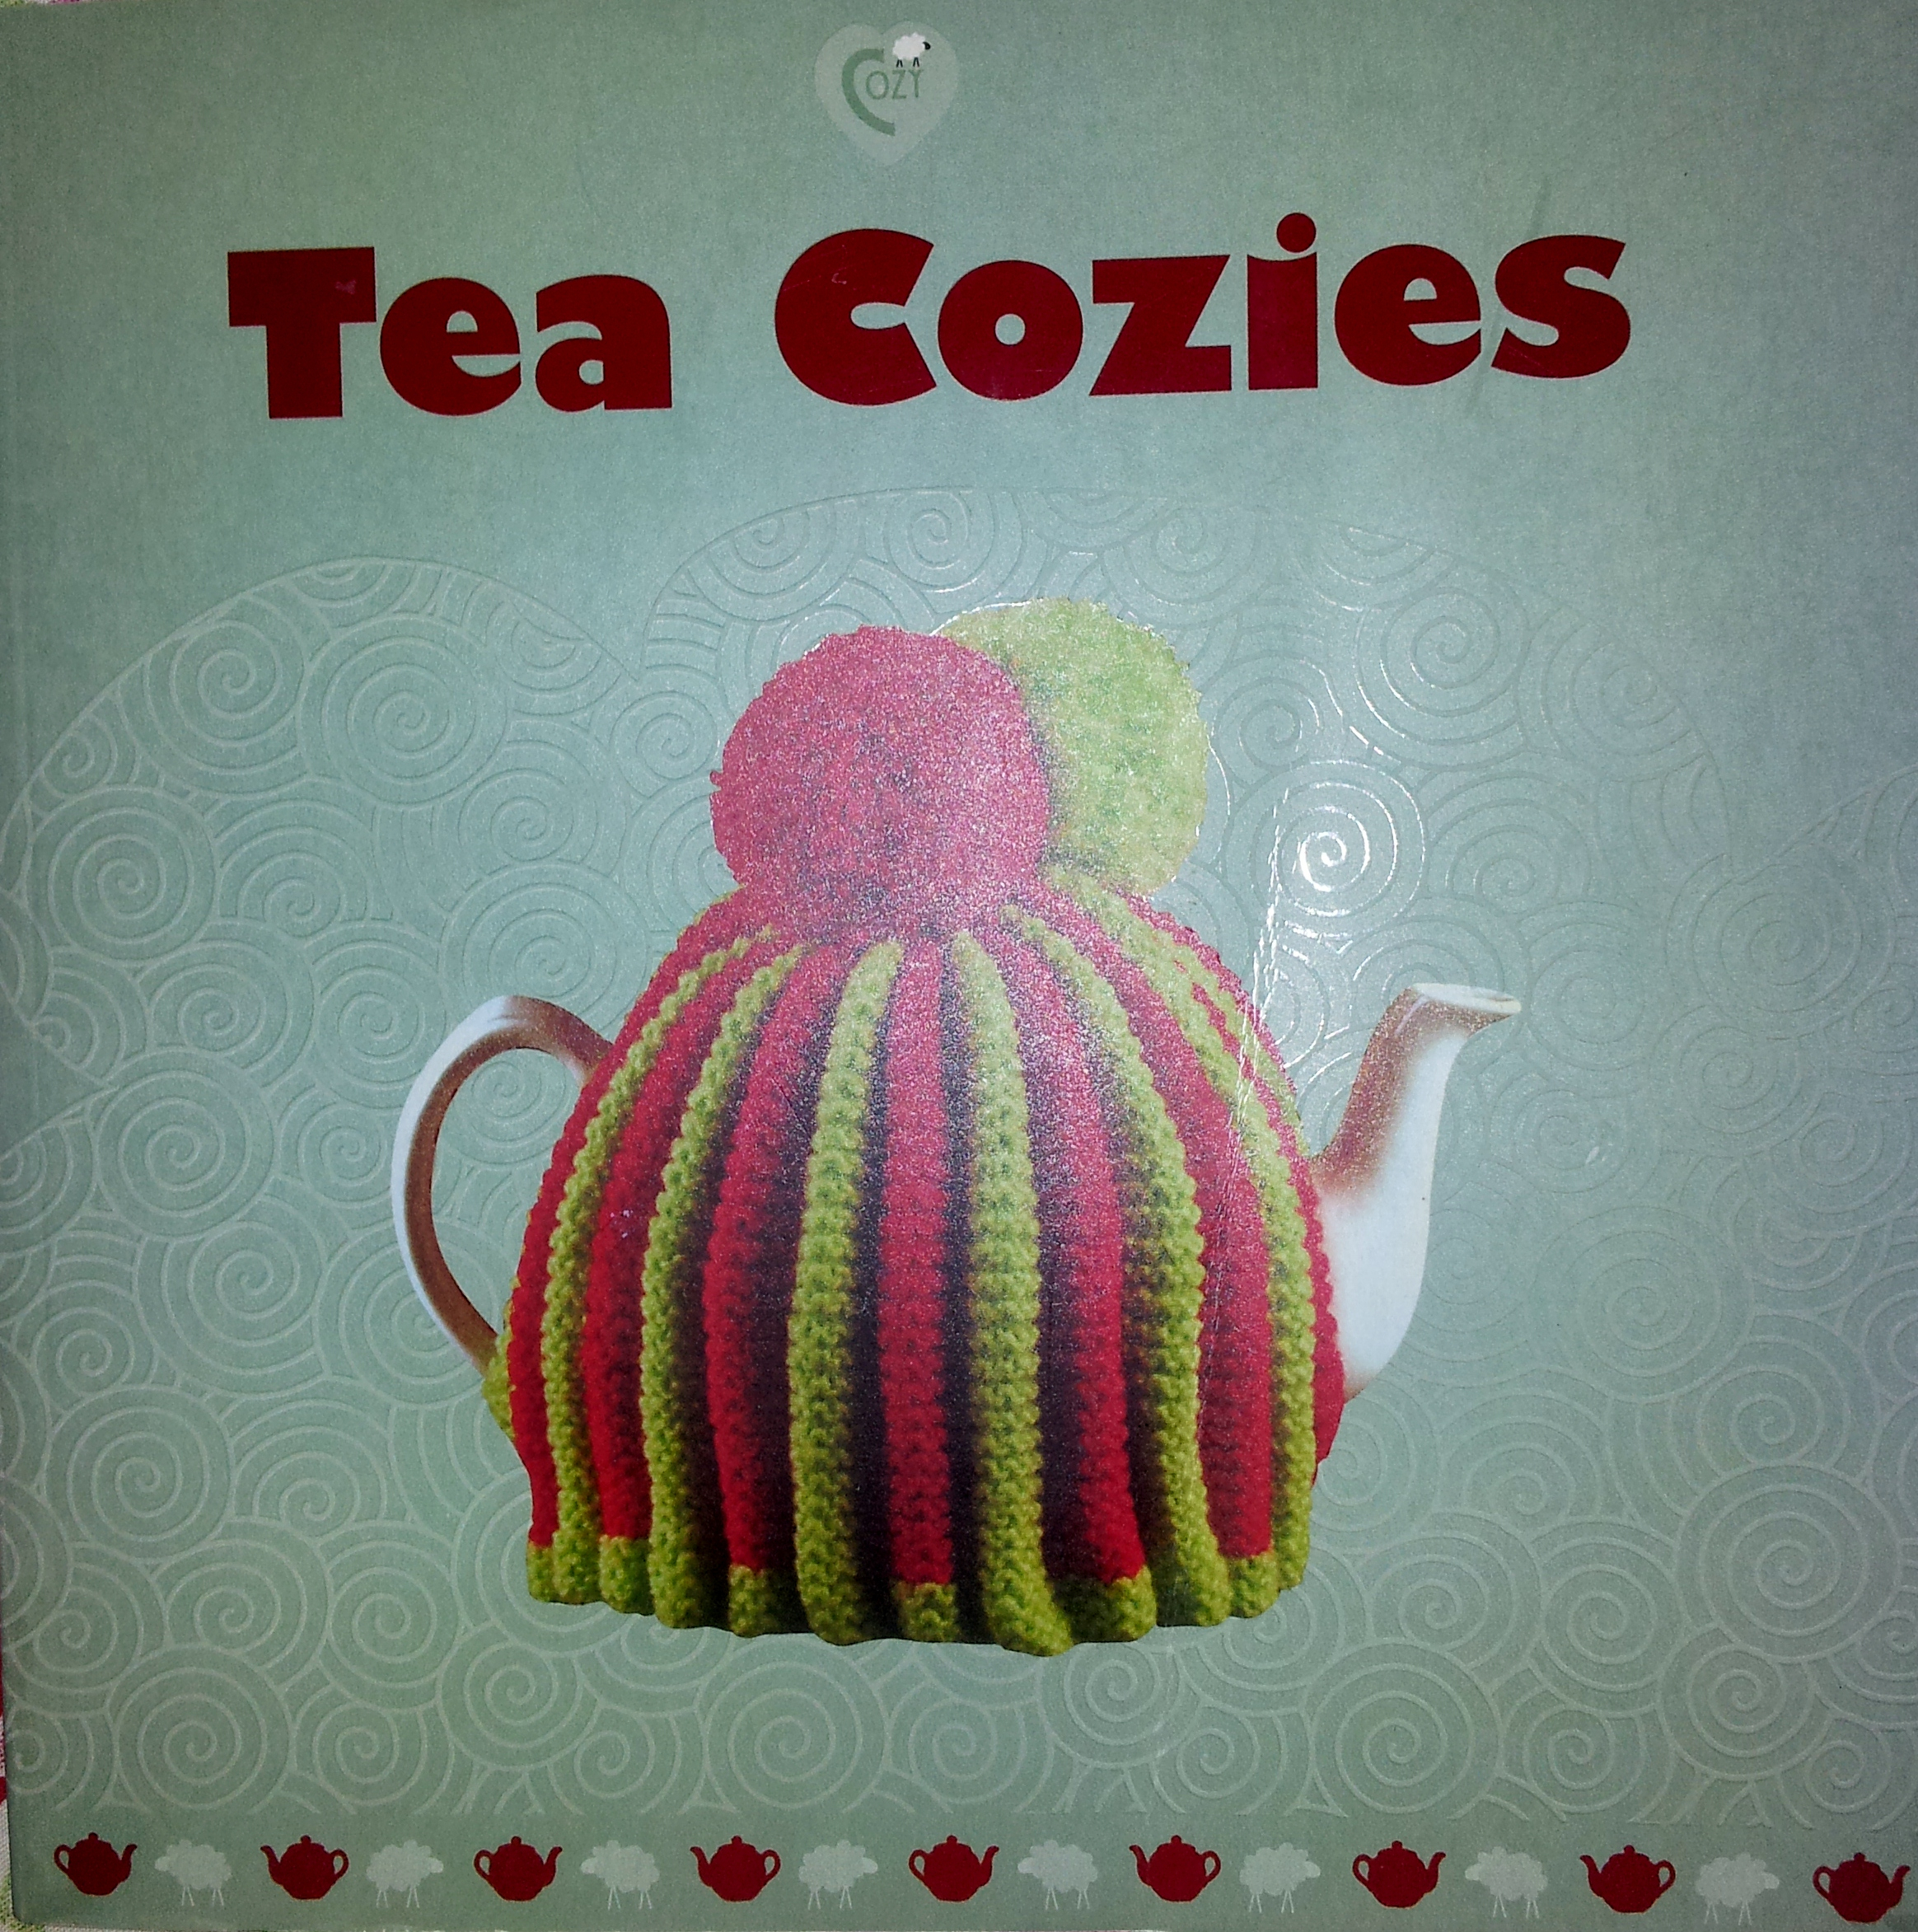 Tea Cosy Knitting Patterns Easy My Vintage Style Knitted Tea Cosy Cozy Thestitchsharer